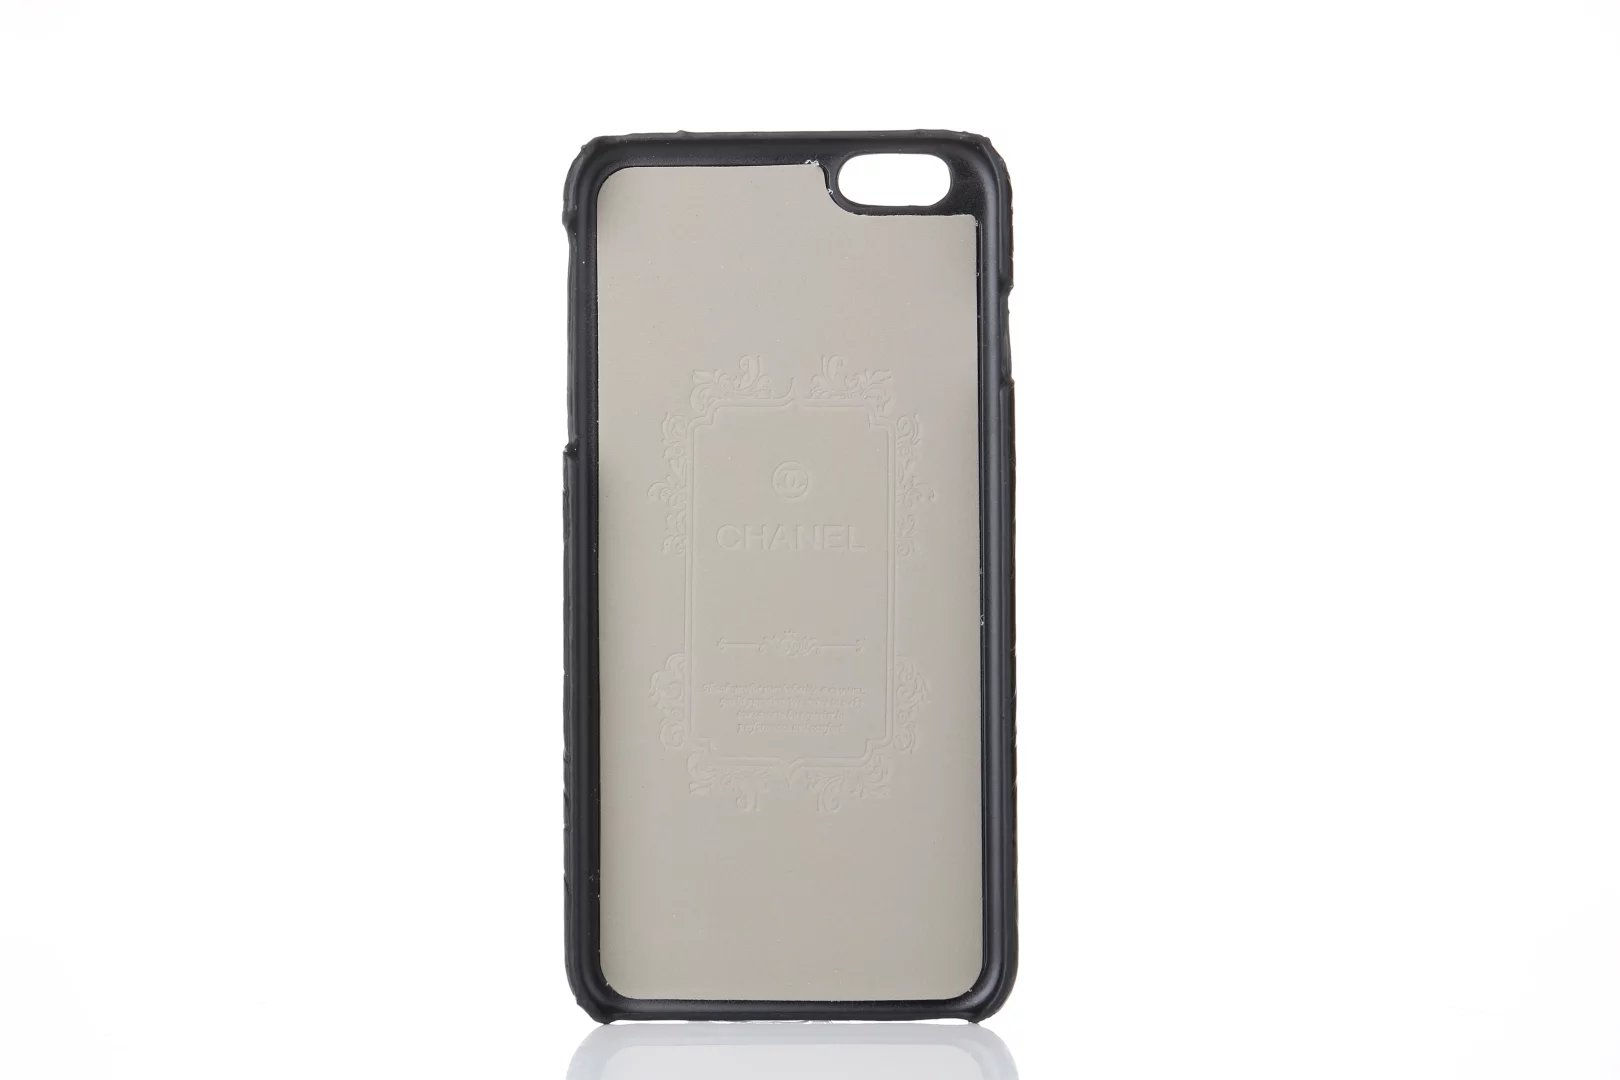 iphone 6s cases custom top rated iphone 6s cases fashion iphone6s case apple iphone 6s s case iphone 6s price range iphone6s apple where to find iphone cases case 6s iphone iphone 6s price